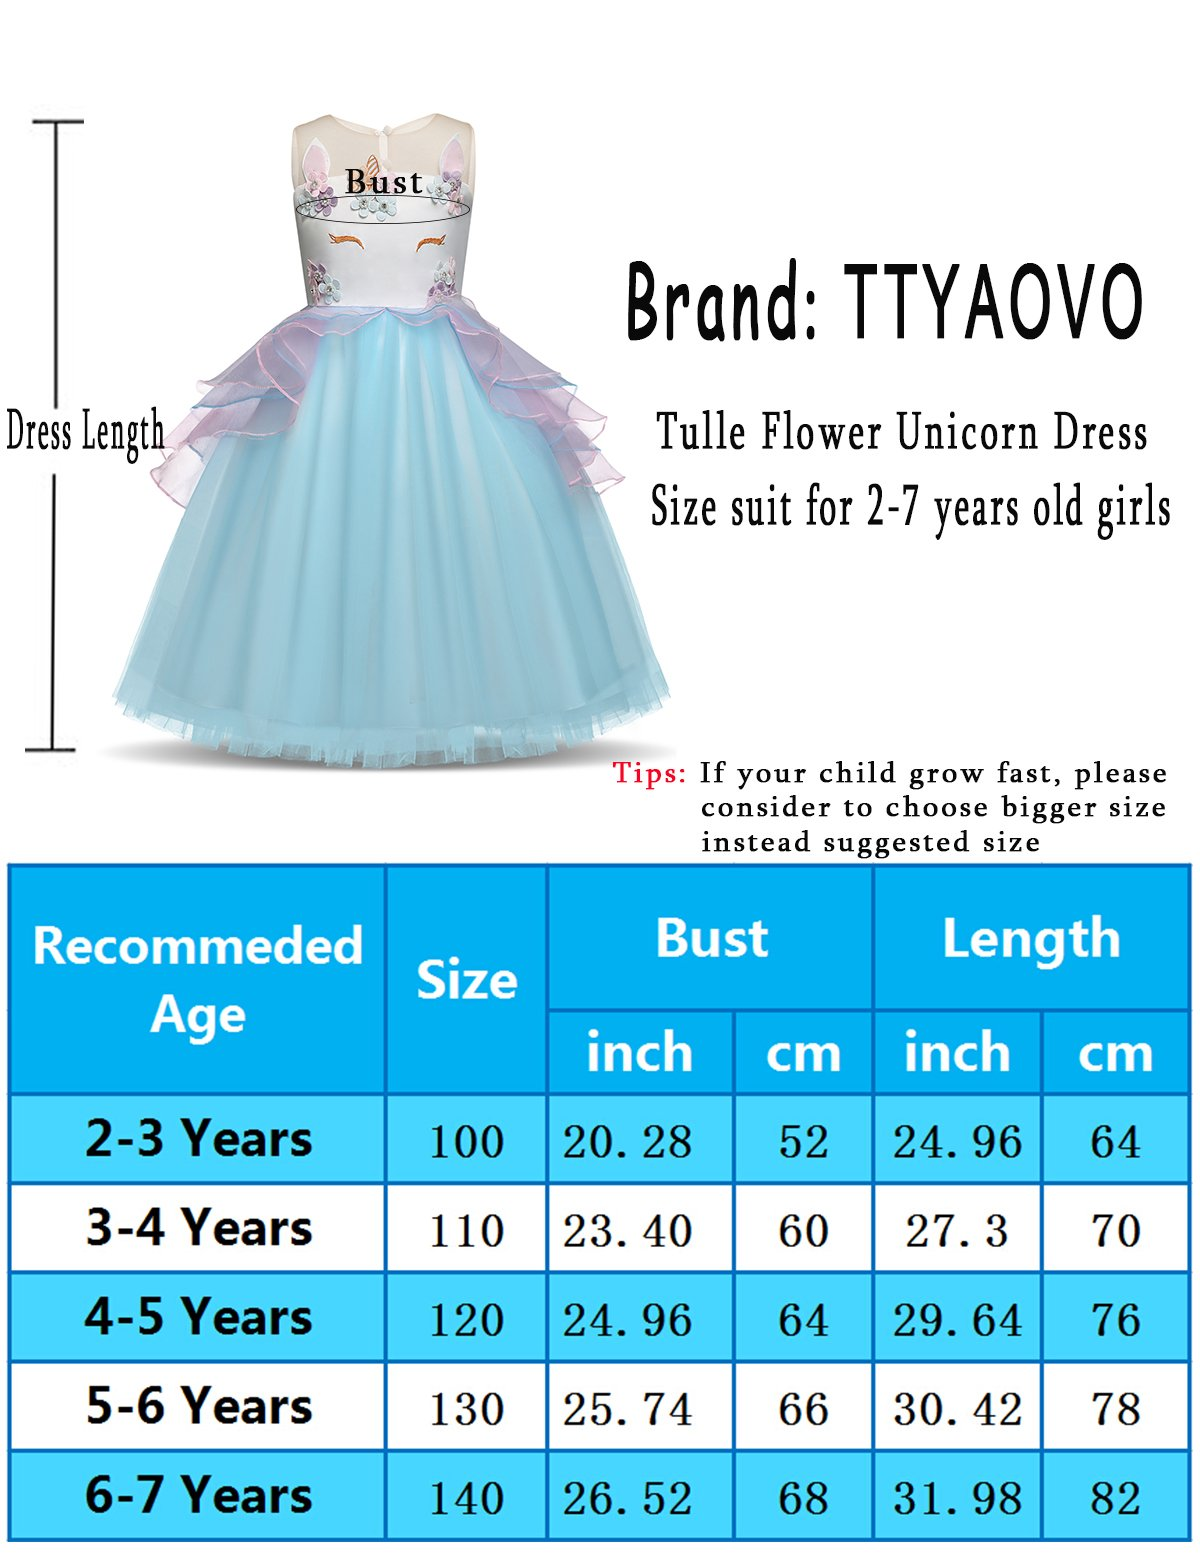 TTYAOVO Kids Unicorn Costume Dress Girl Princess Flower Pageant Party Tutu Dresses Size 5-6 Years Pink by TTYAOVO (Image #7)